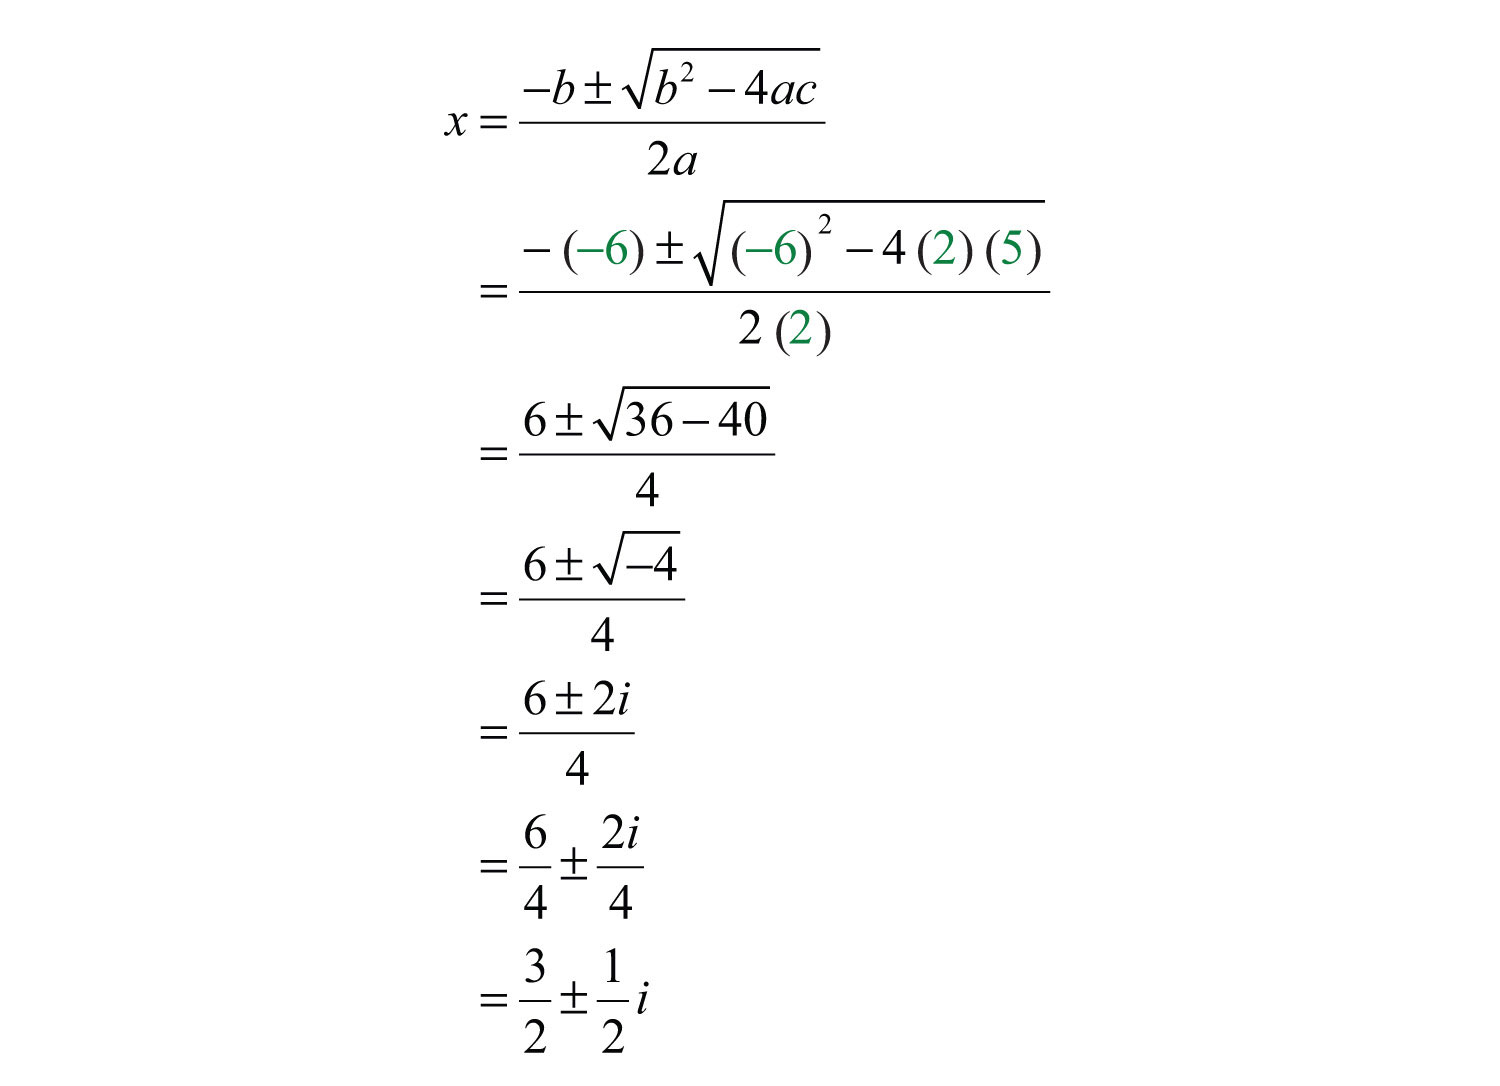 Worksheet solving quadratics worksheet grass fedjp worksheet study qd 23 imaginary numbers mathops converting from factored form to standard form worksheet solving quadratics falaconquin